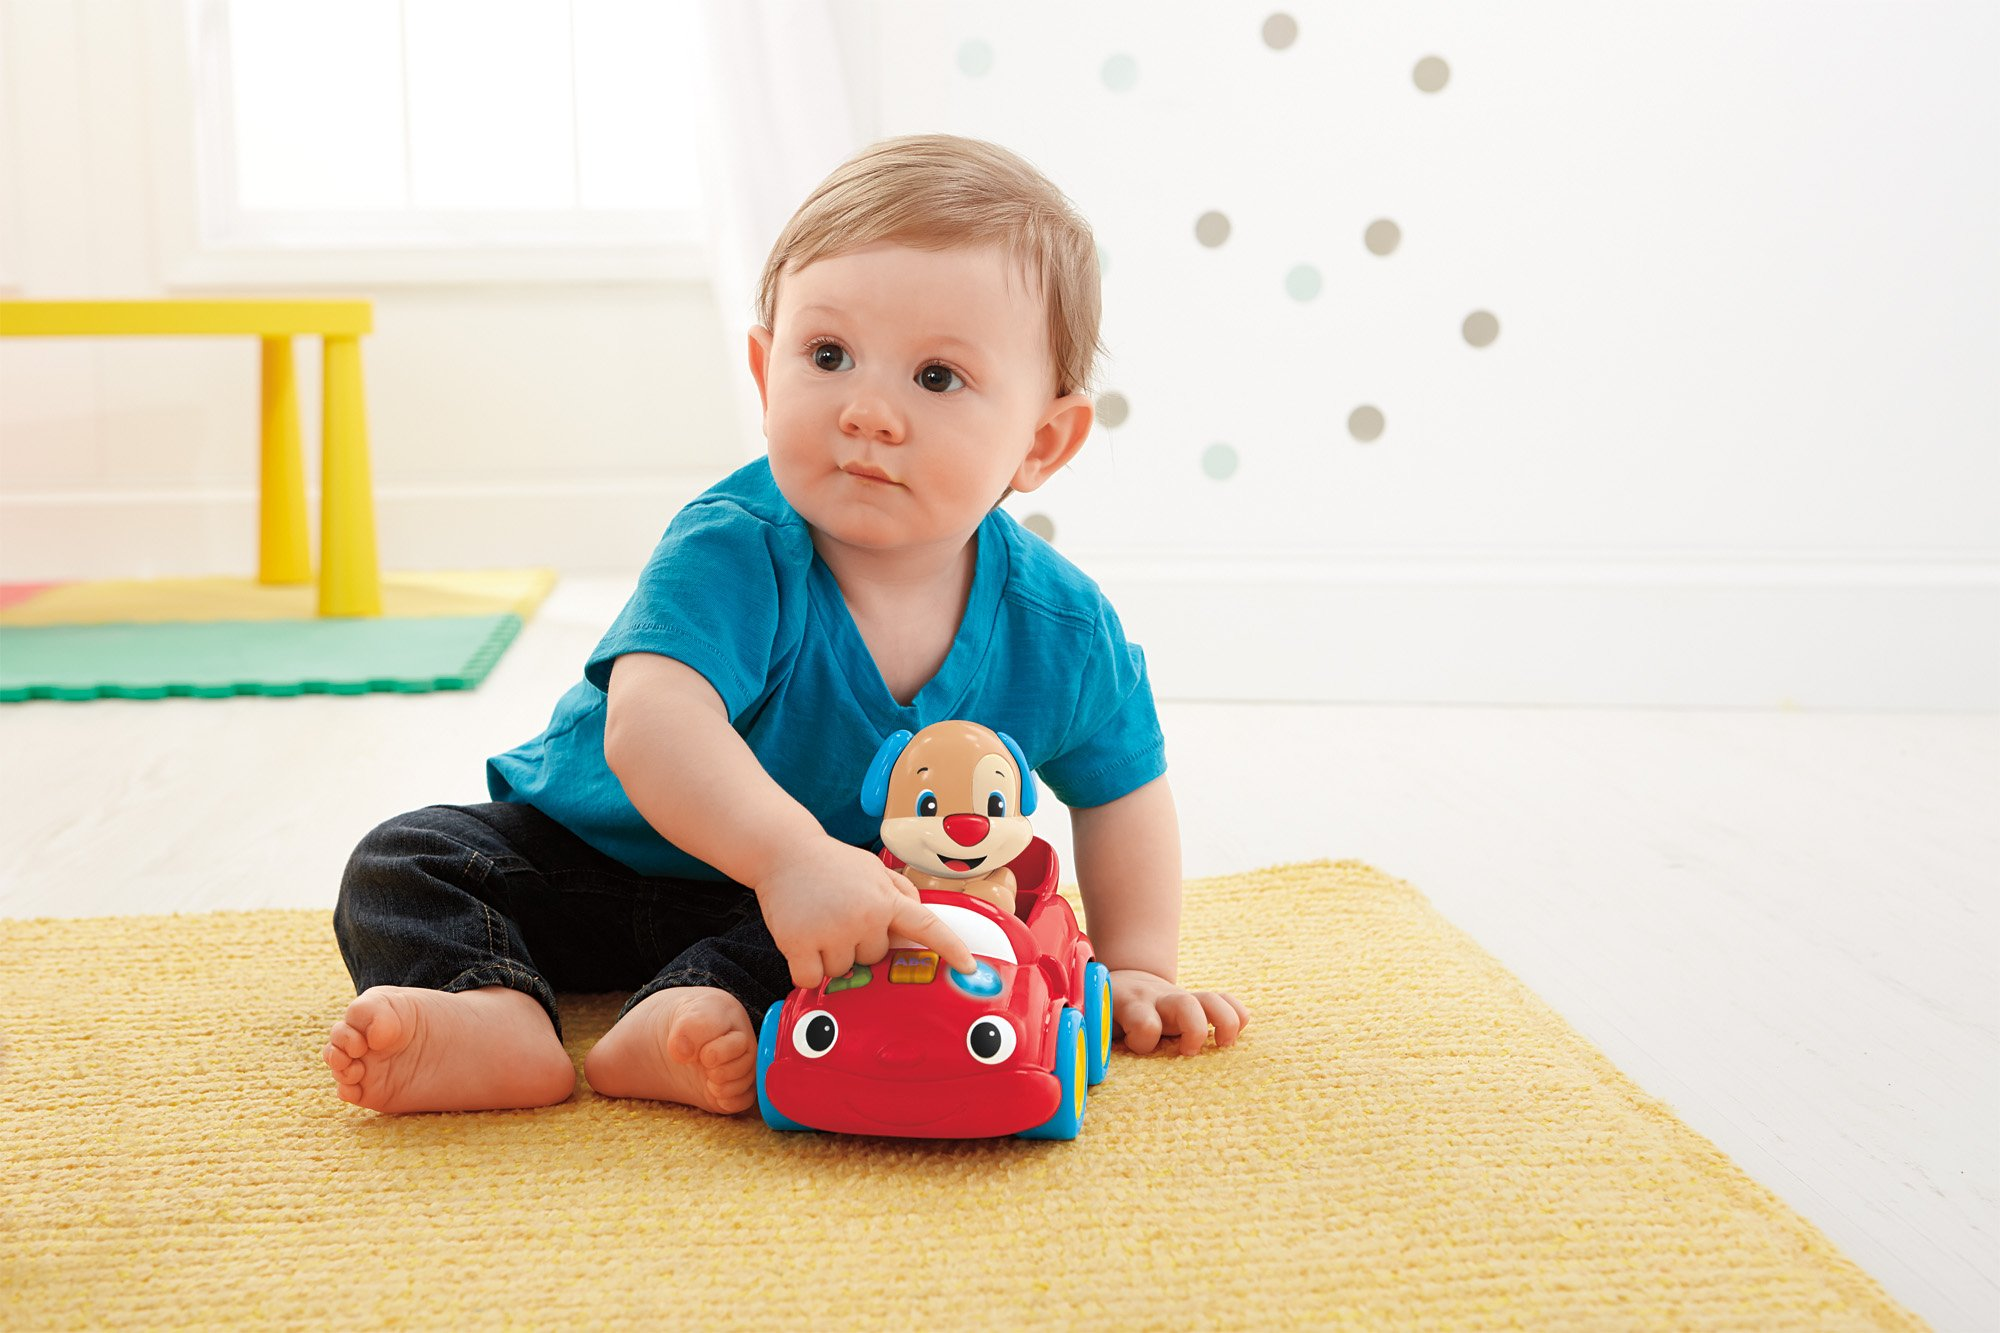 Fisher Price Puppy Push Car Learn To Walk Toy Baby Toddler Infant